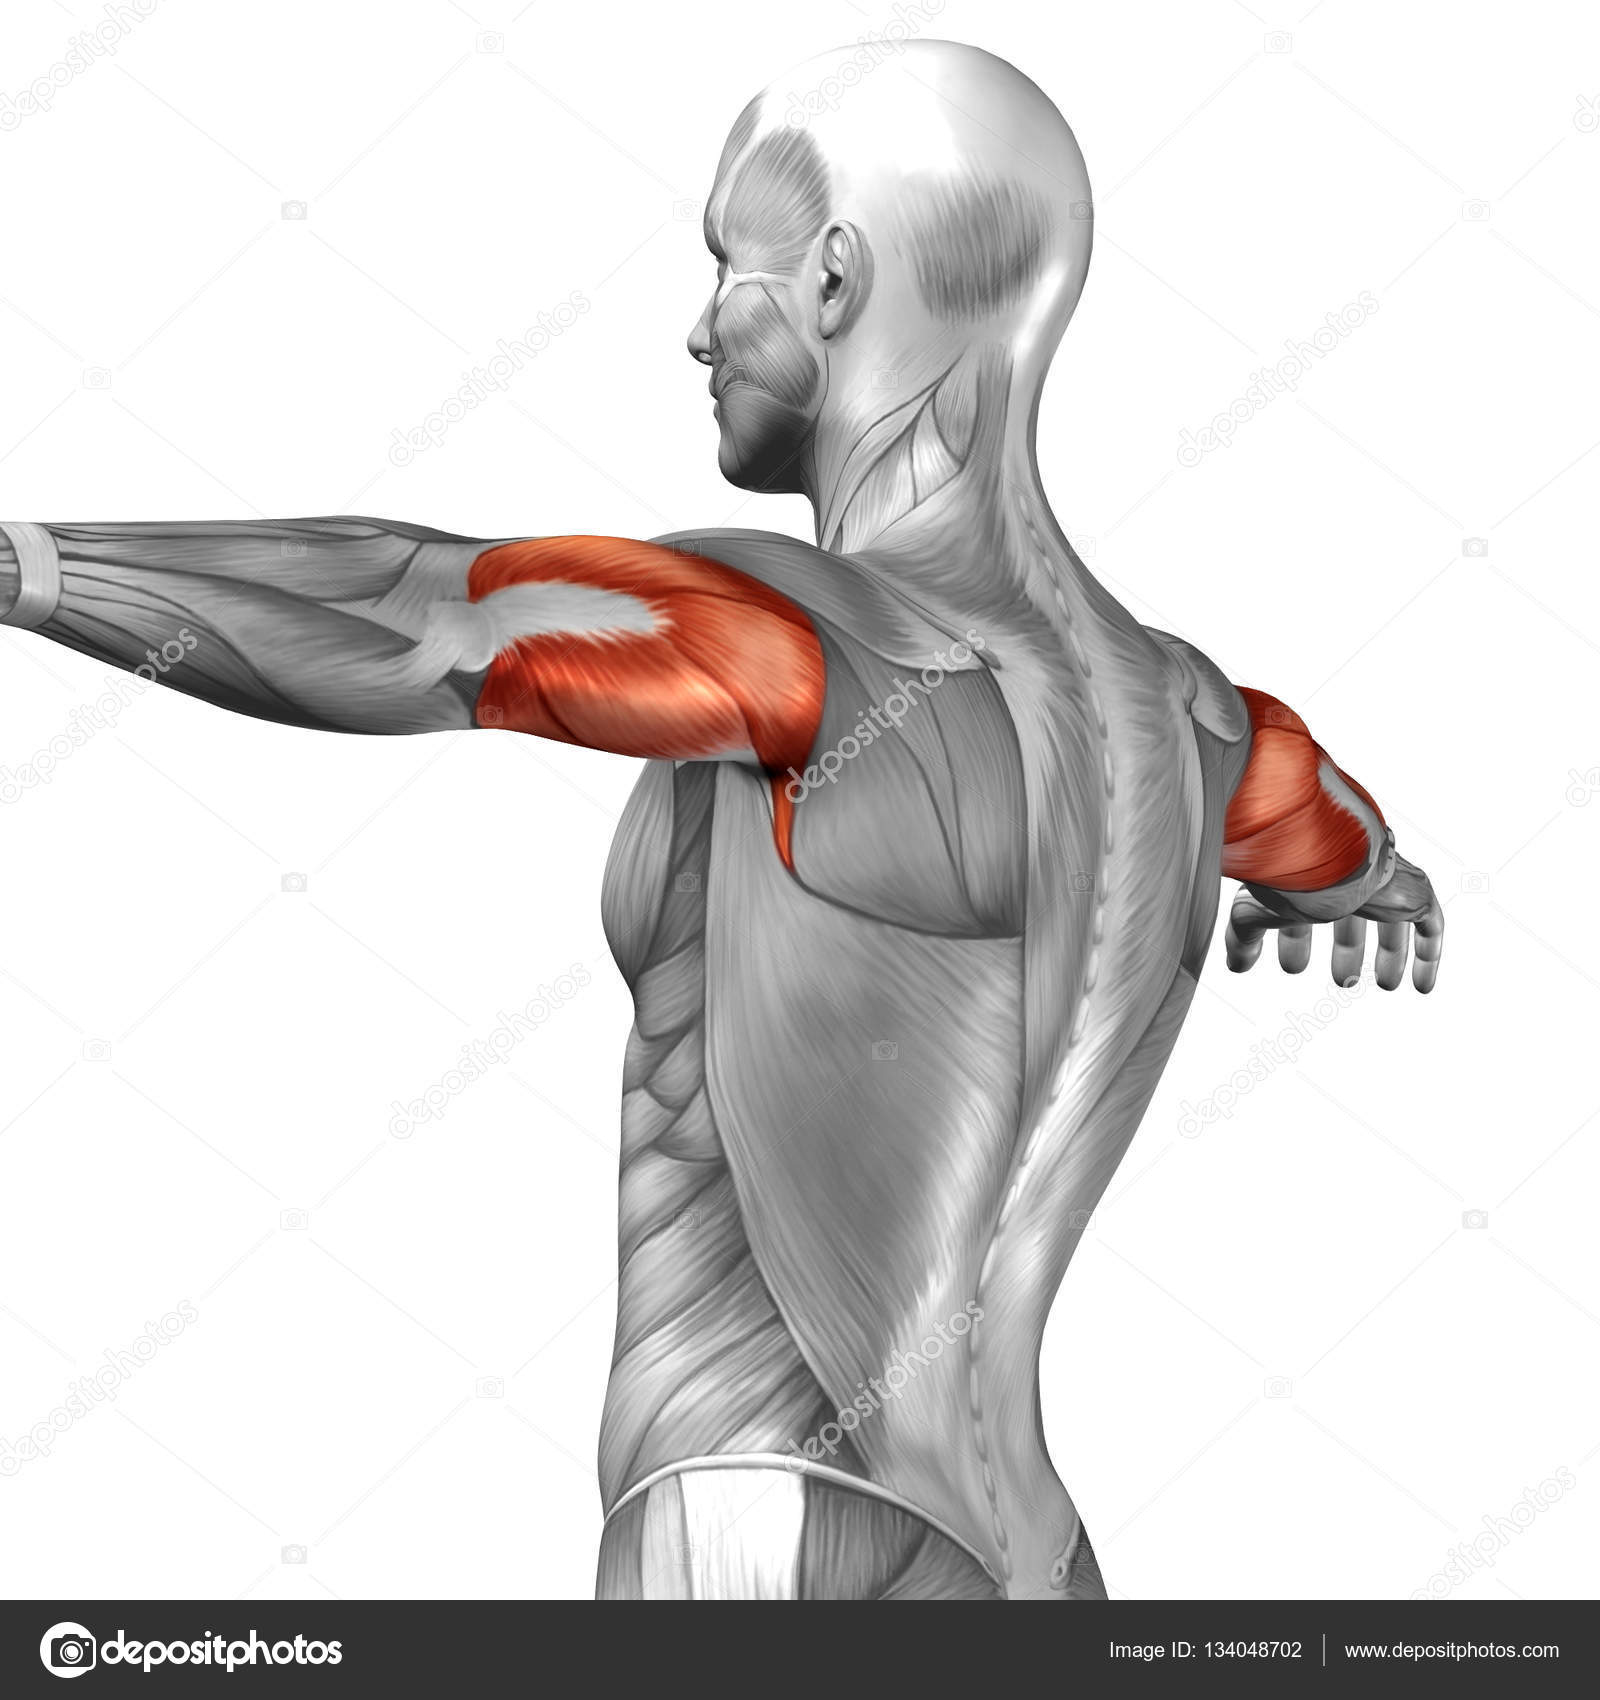 Back Muscles Structure Of Man Stock Photo Design36 134048702